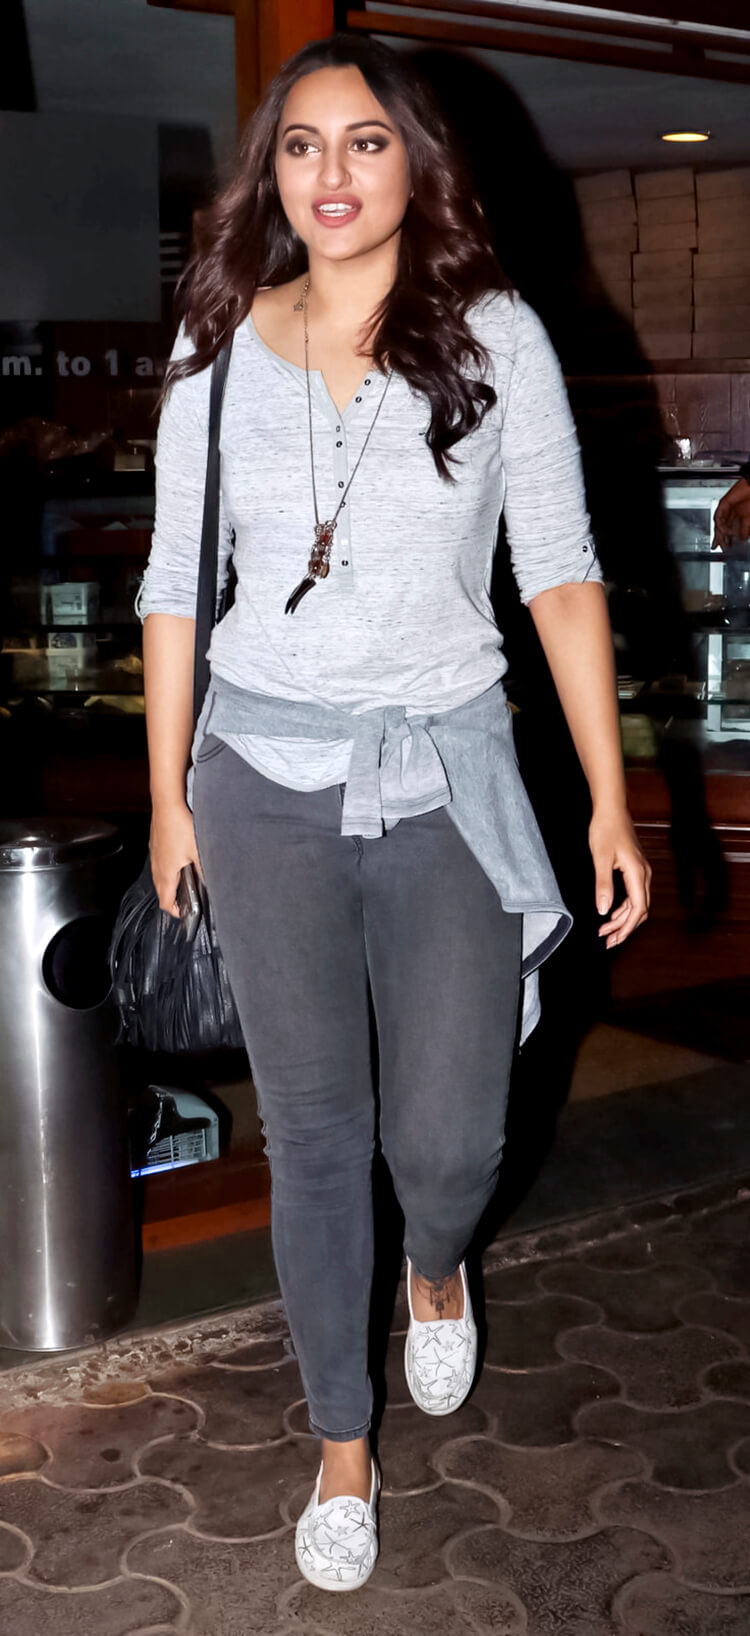 Sonakshi Sinha is rocking her street style in this candid photo